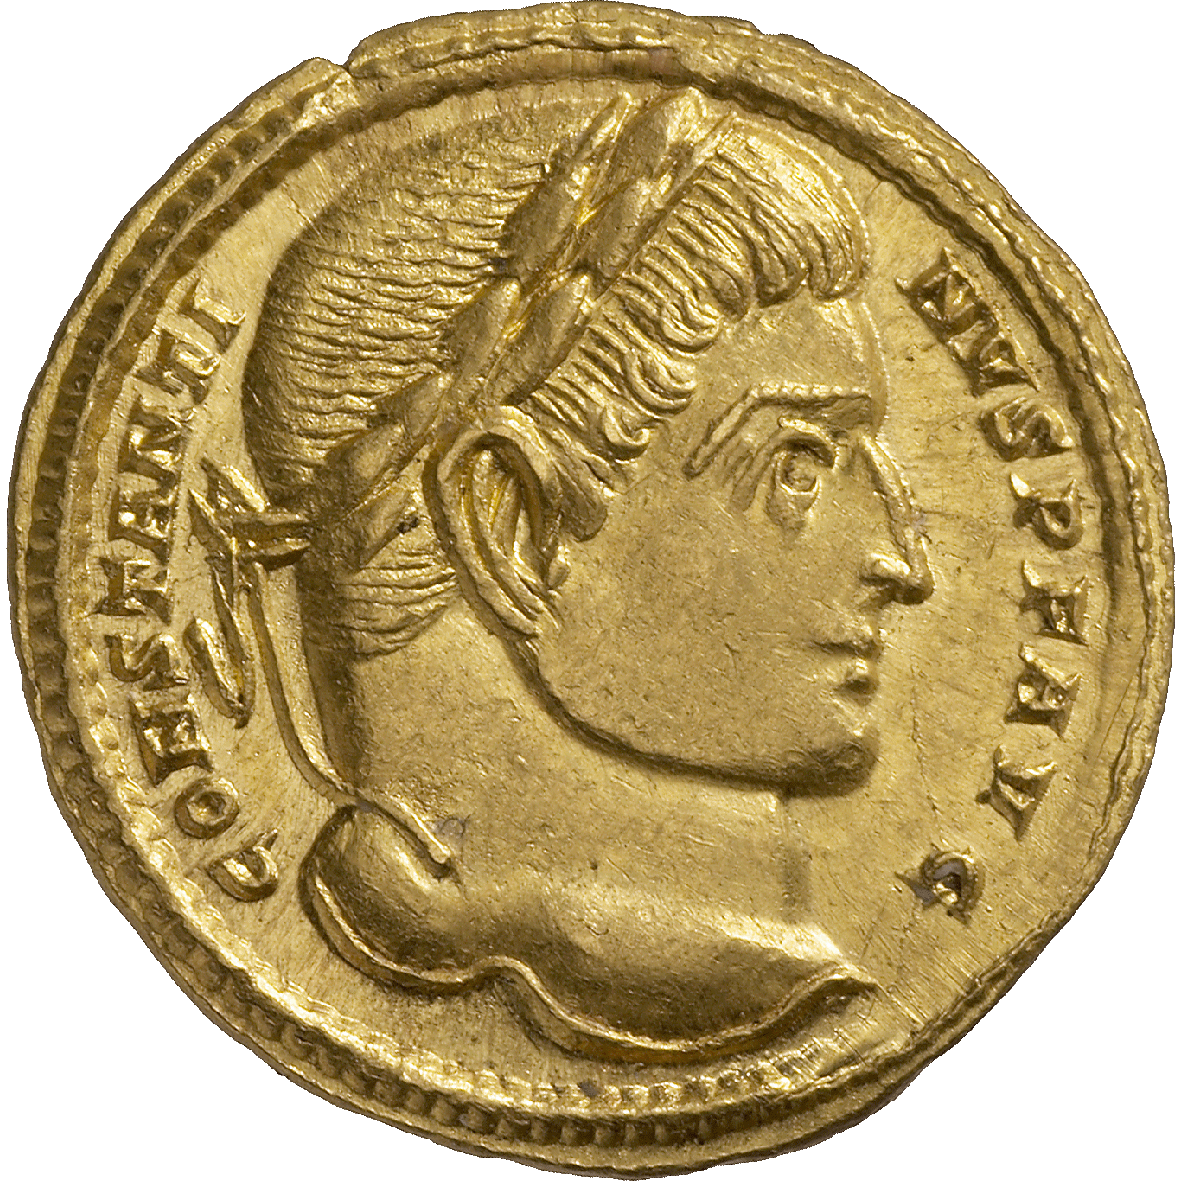 Roman Empire, Constantine I the Great, Solidus (obverse)